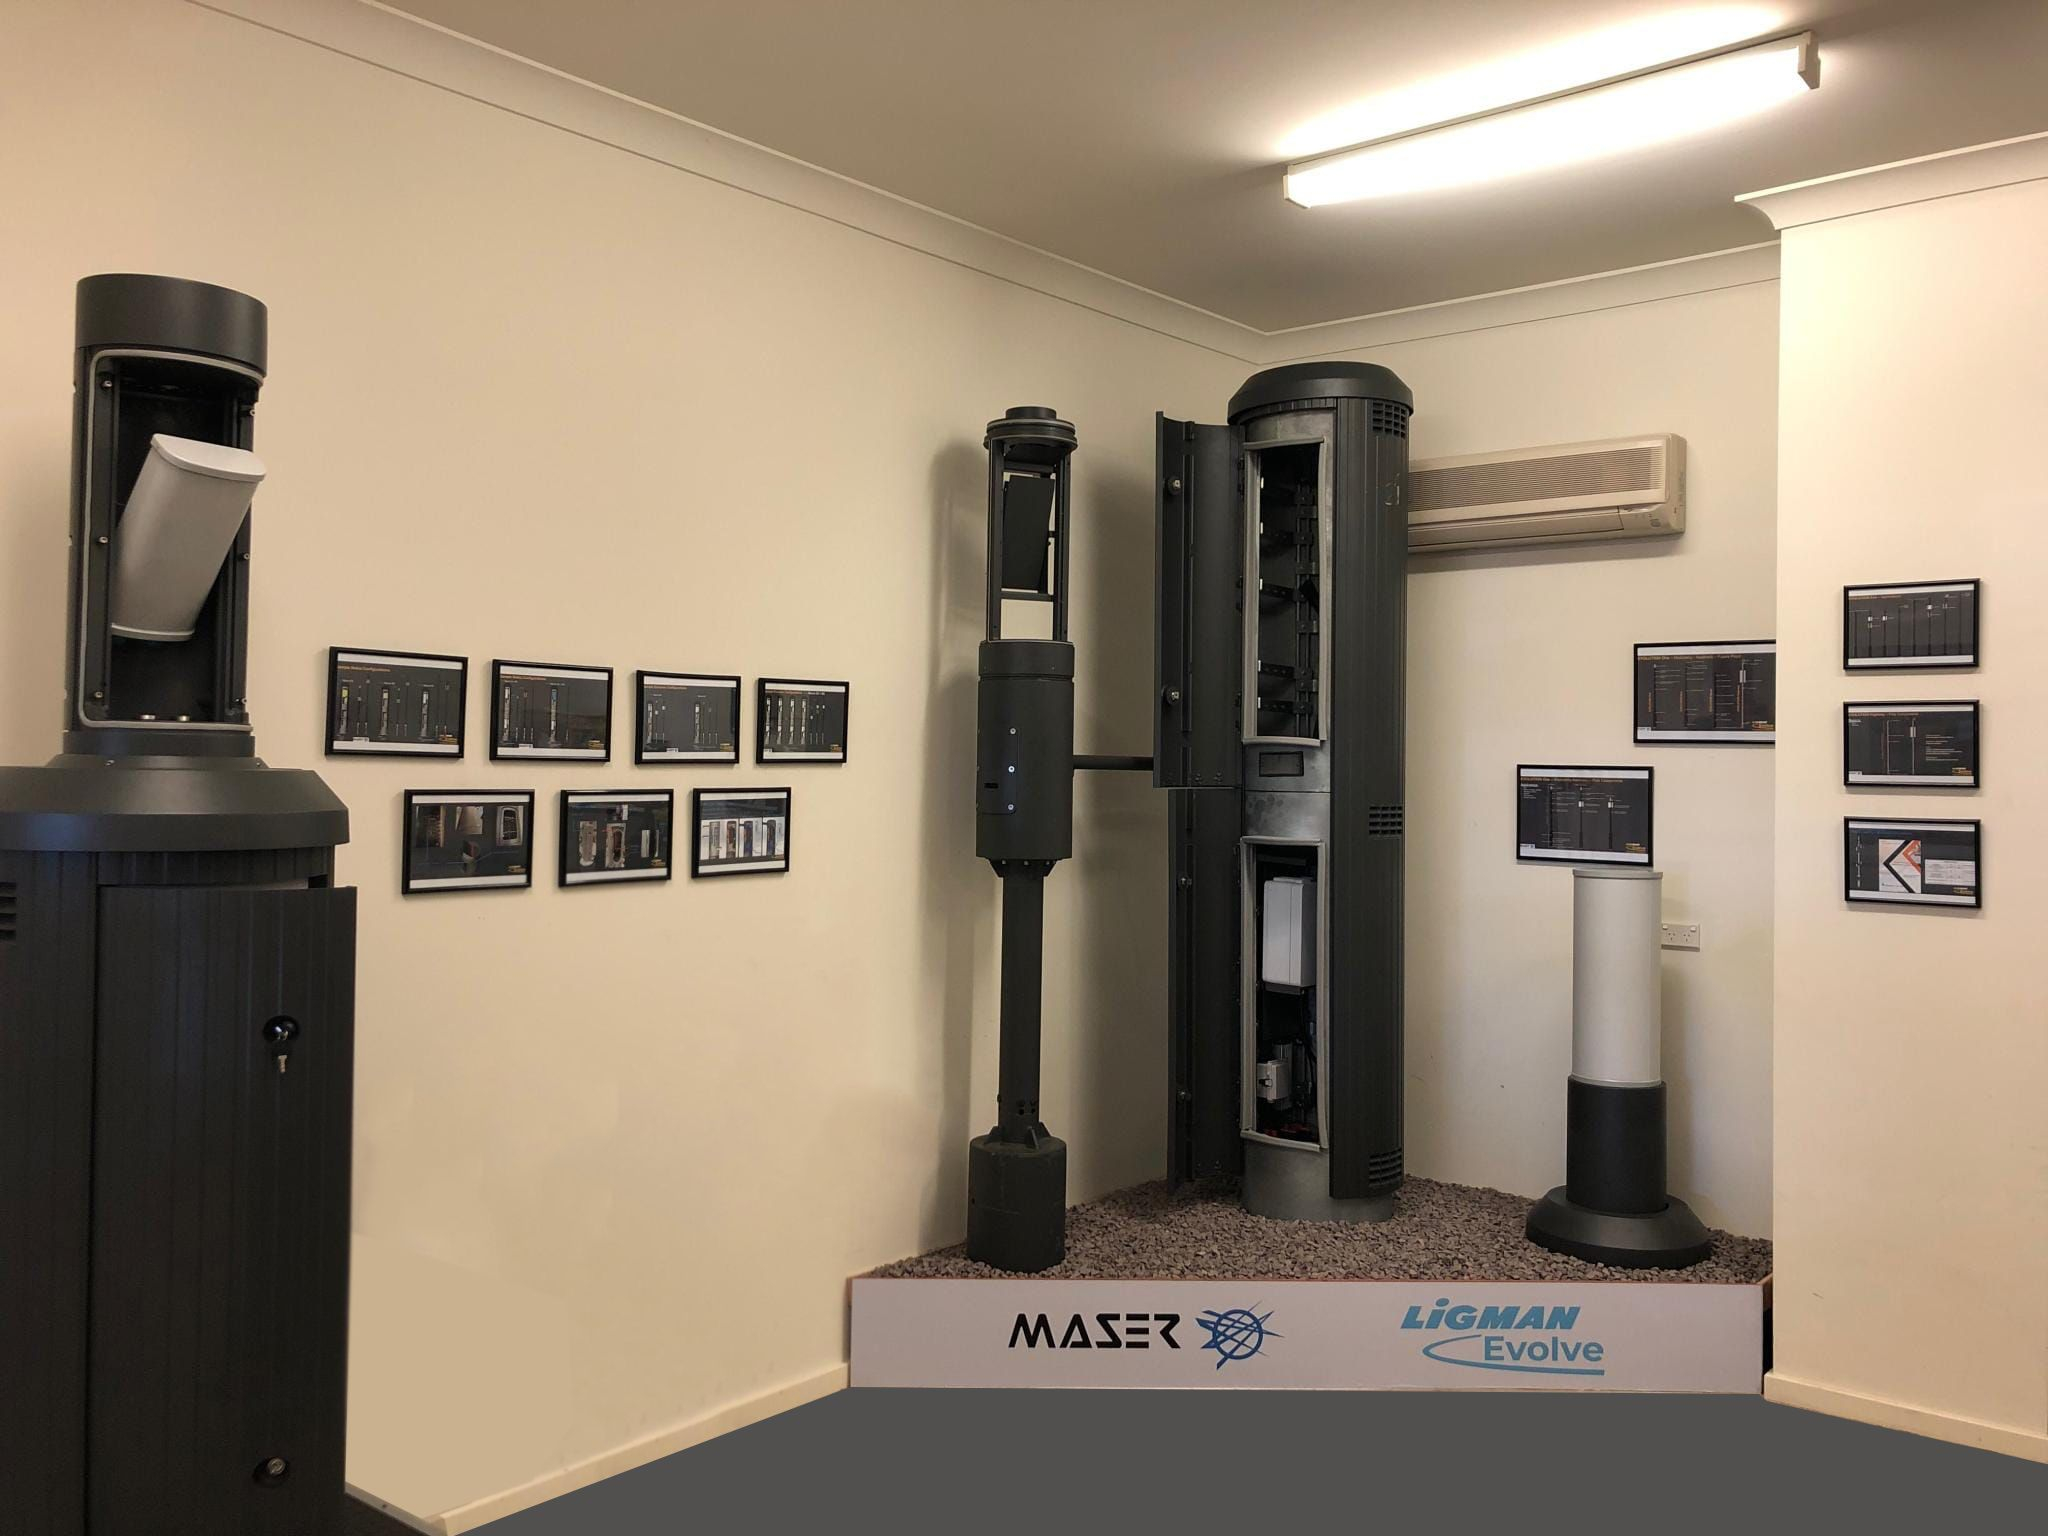 Maser unveil our new Ligman Evolve smart pole display in our Sydney office